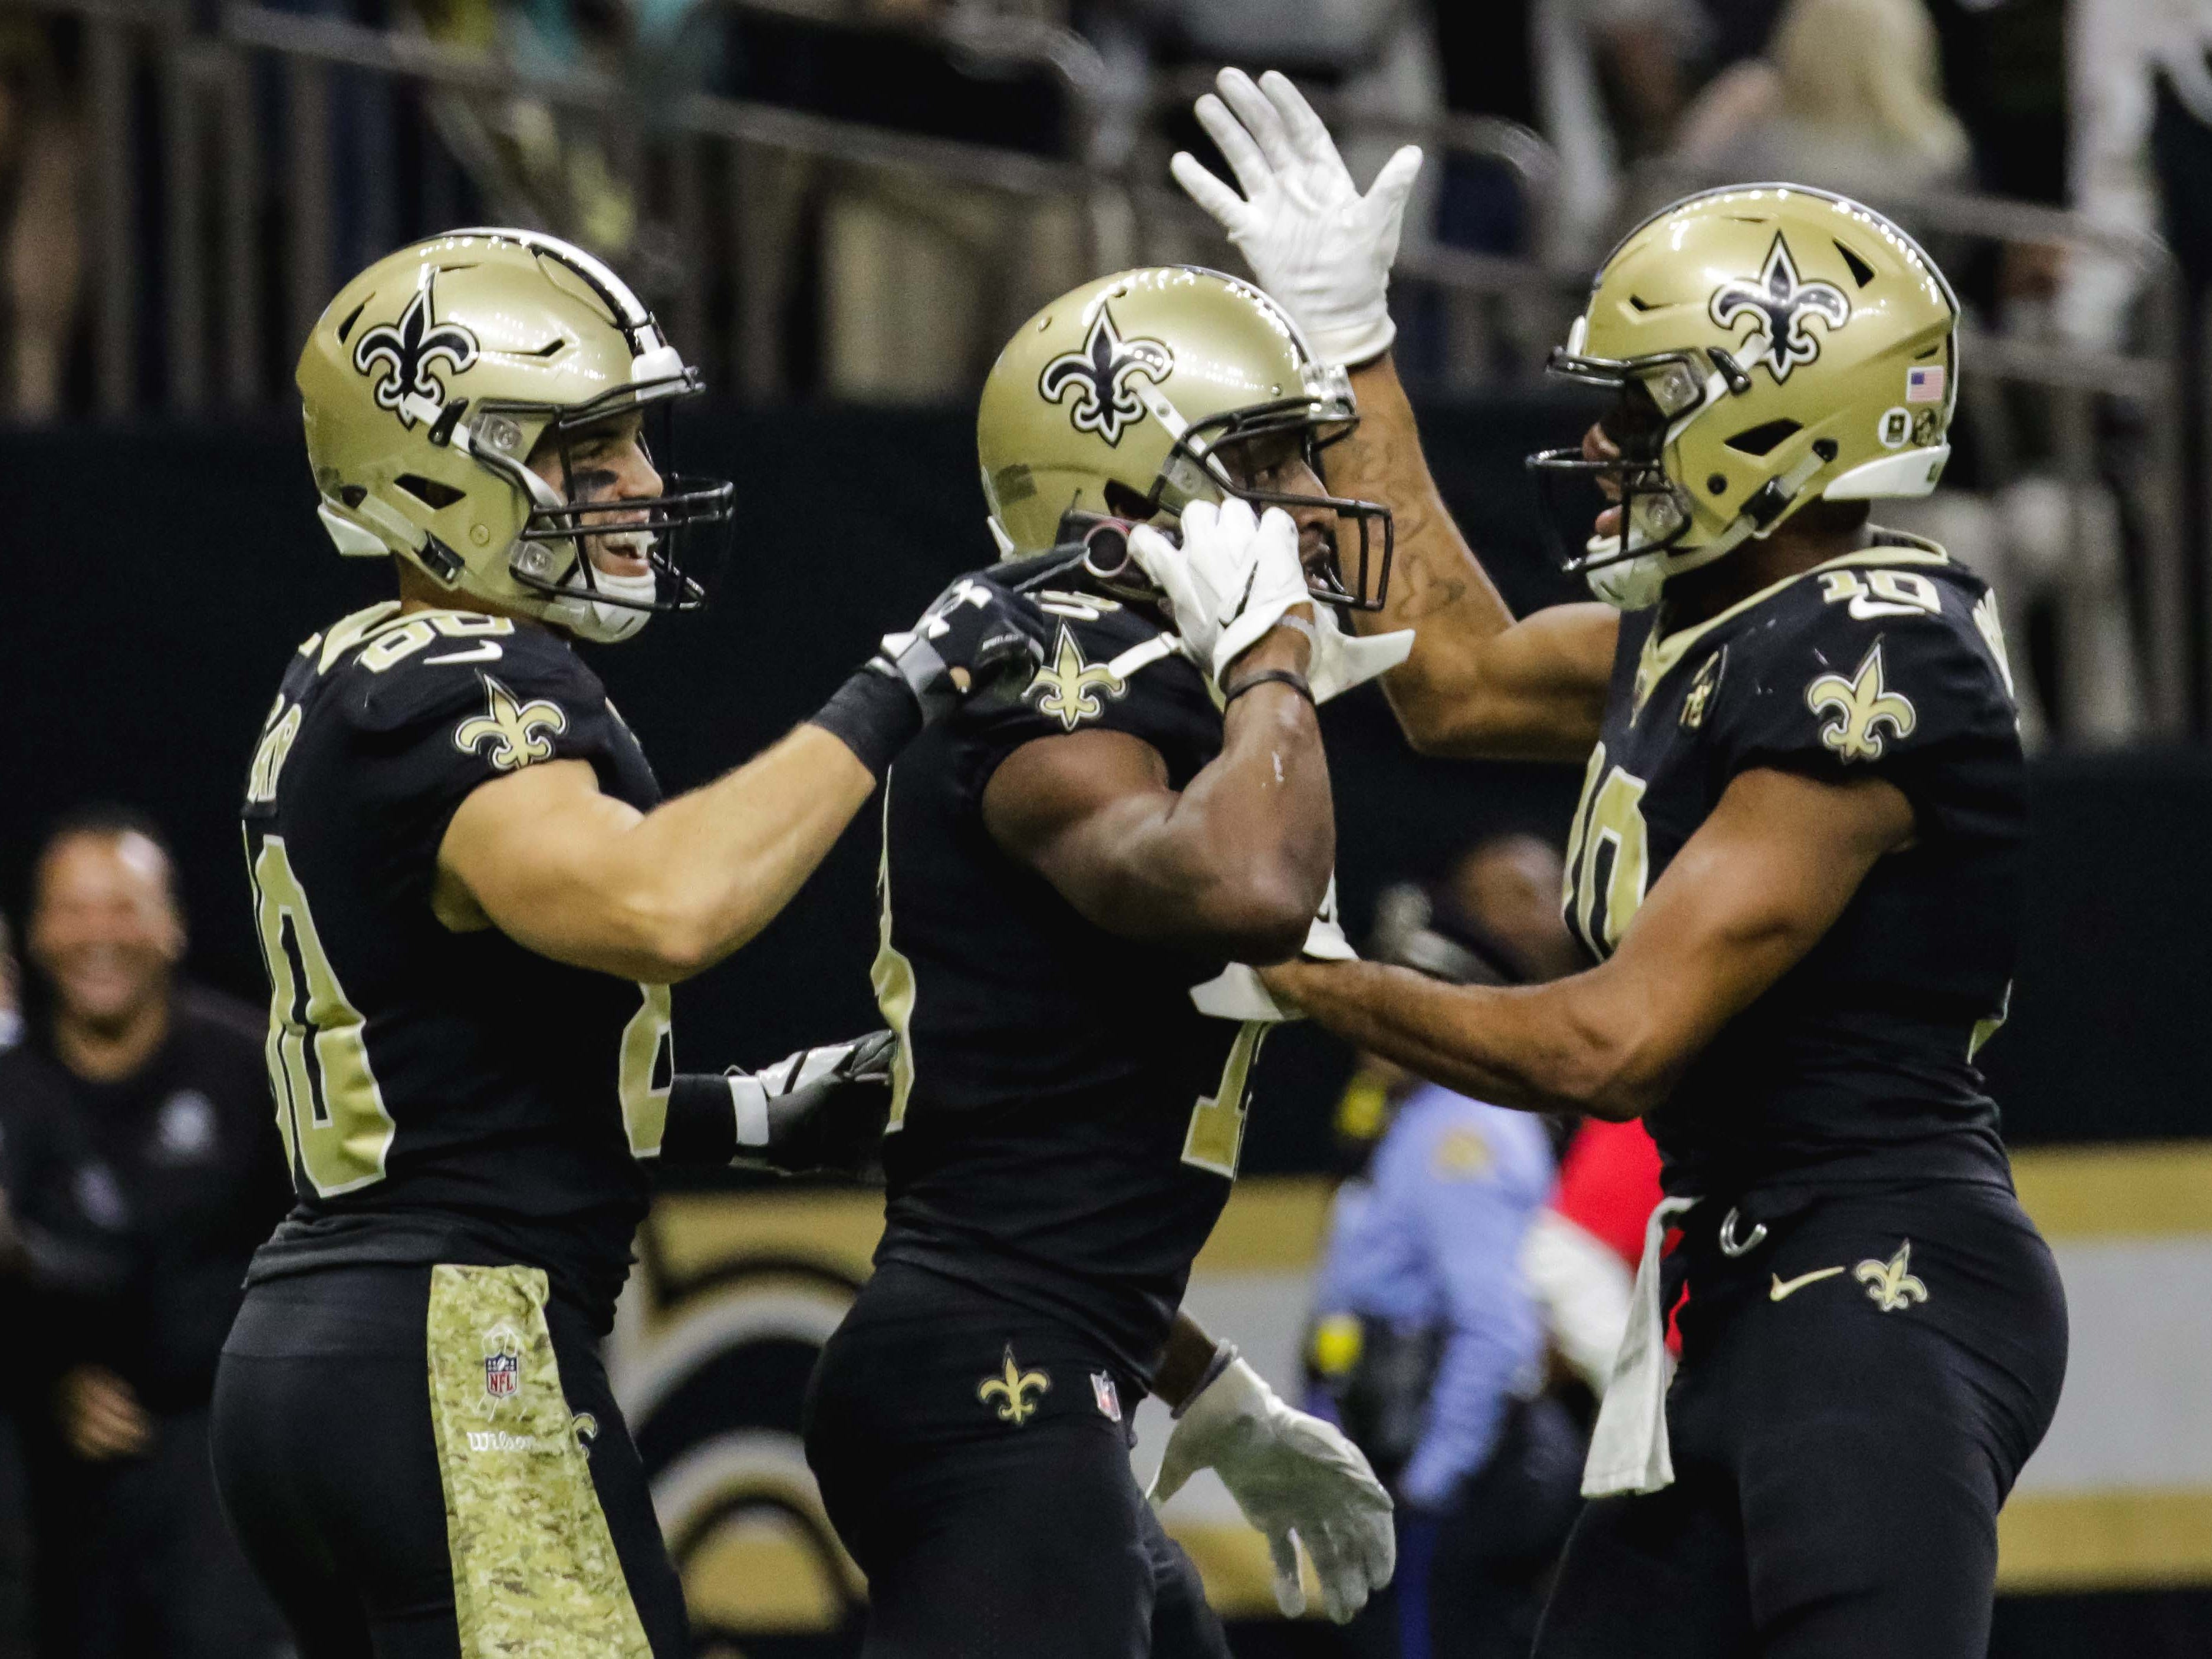 4. Saints (7-1) | Last game: Defeated the Rams, 45-35 | Previous ranking: 4